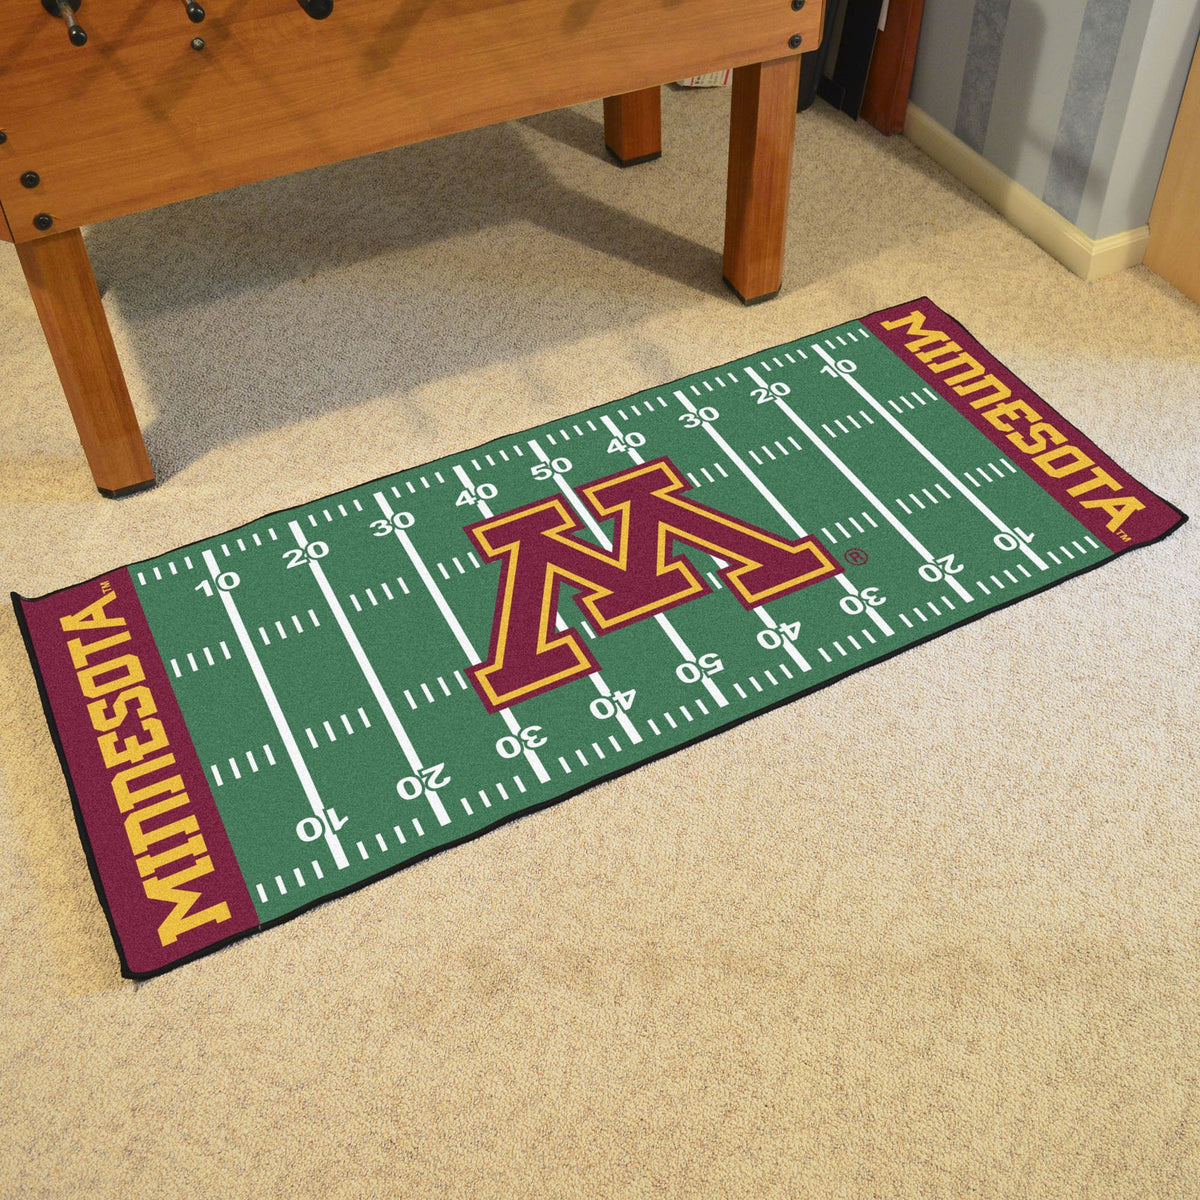 Collegiate - Football Field Runner Collegiate Mats, Rectangular Mats, Football Field Runner, Collegiate, Home Fan Mats Minnesota